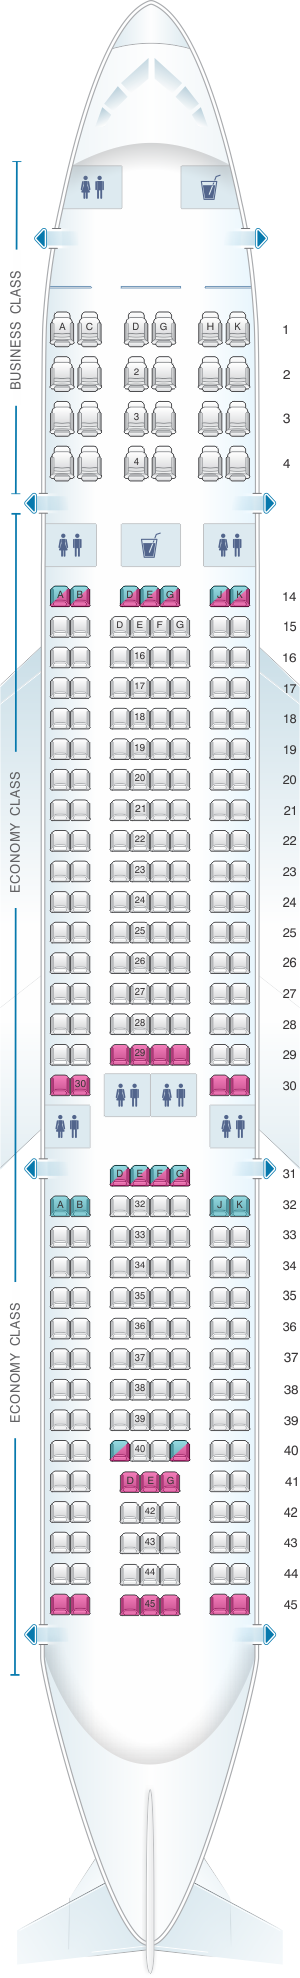 Seat map for Vietnam Airlines Airbus A330 200 266PAX